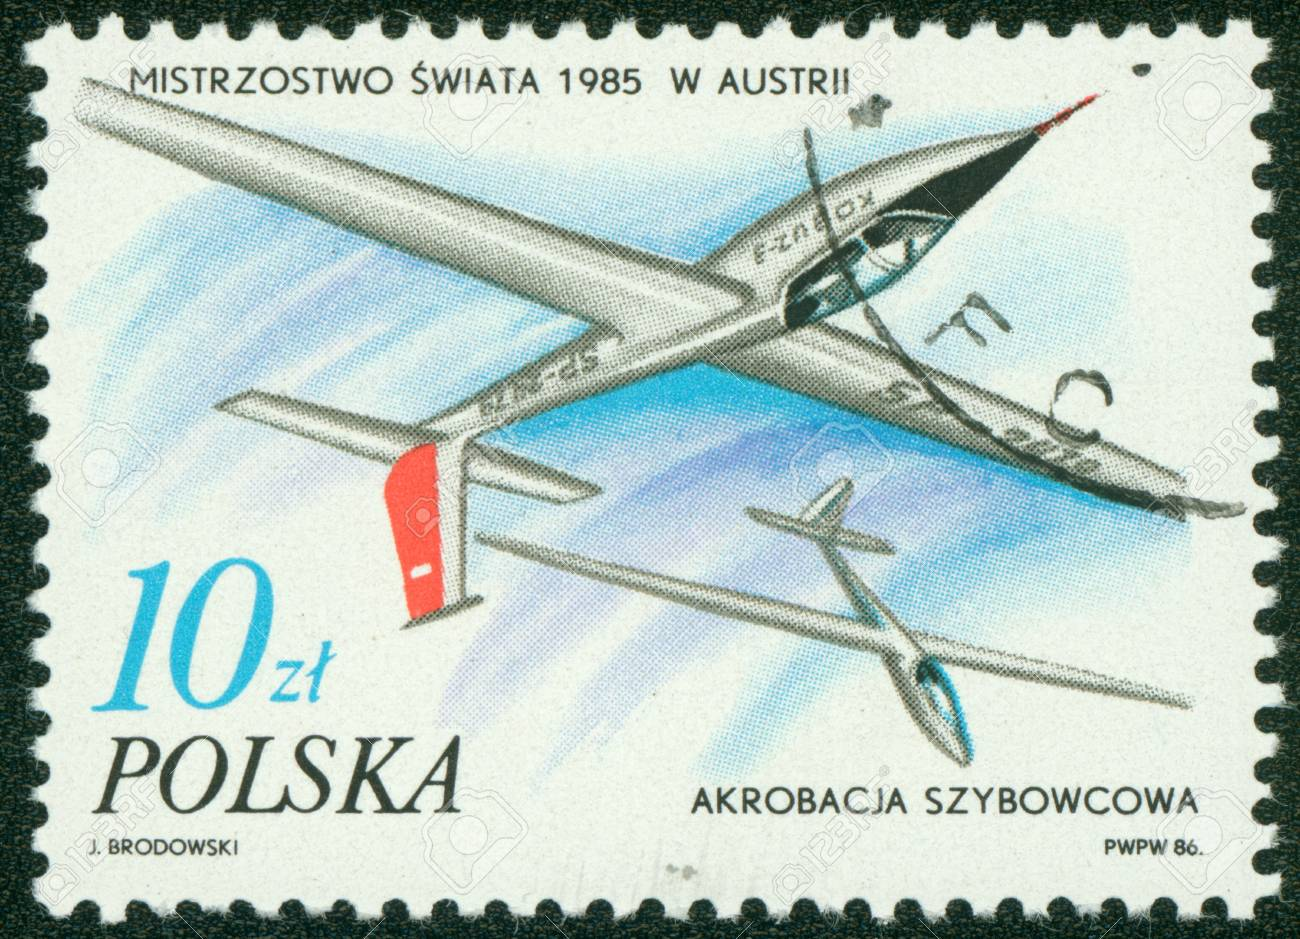 REPUBLIC OF POLAND - CIRCA 1986  a stamp printed by Republic of Poland, shows white airplanes in the sky, circa 1986 Stock Photo - 16233147